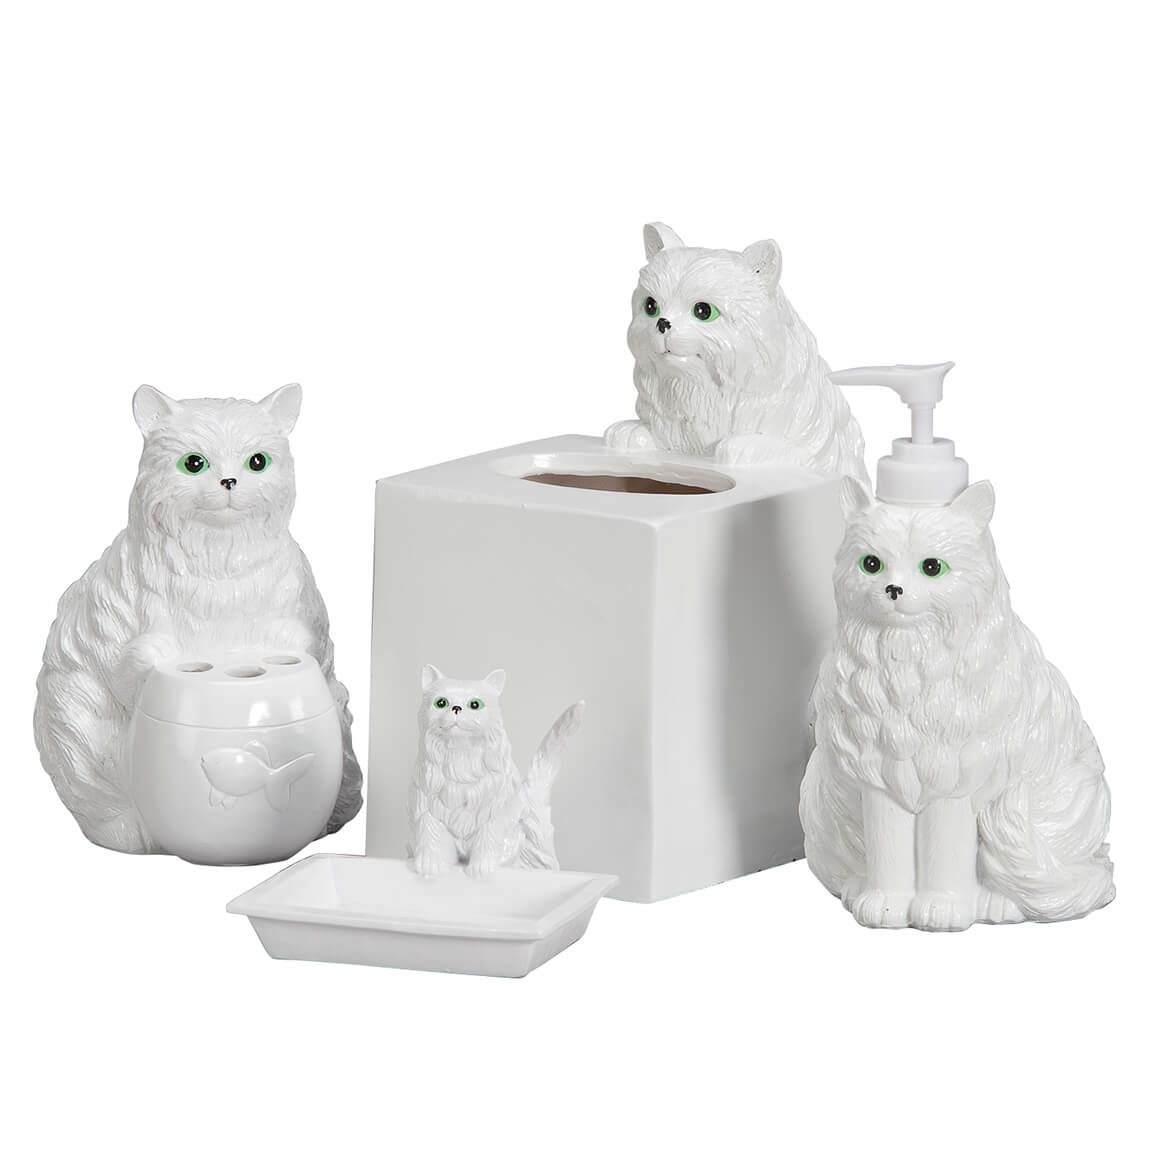 Playful Cat Bathroom Accessories, Set of 4 - Soap Dish - Walter Drake